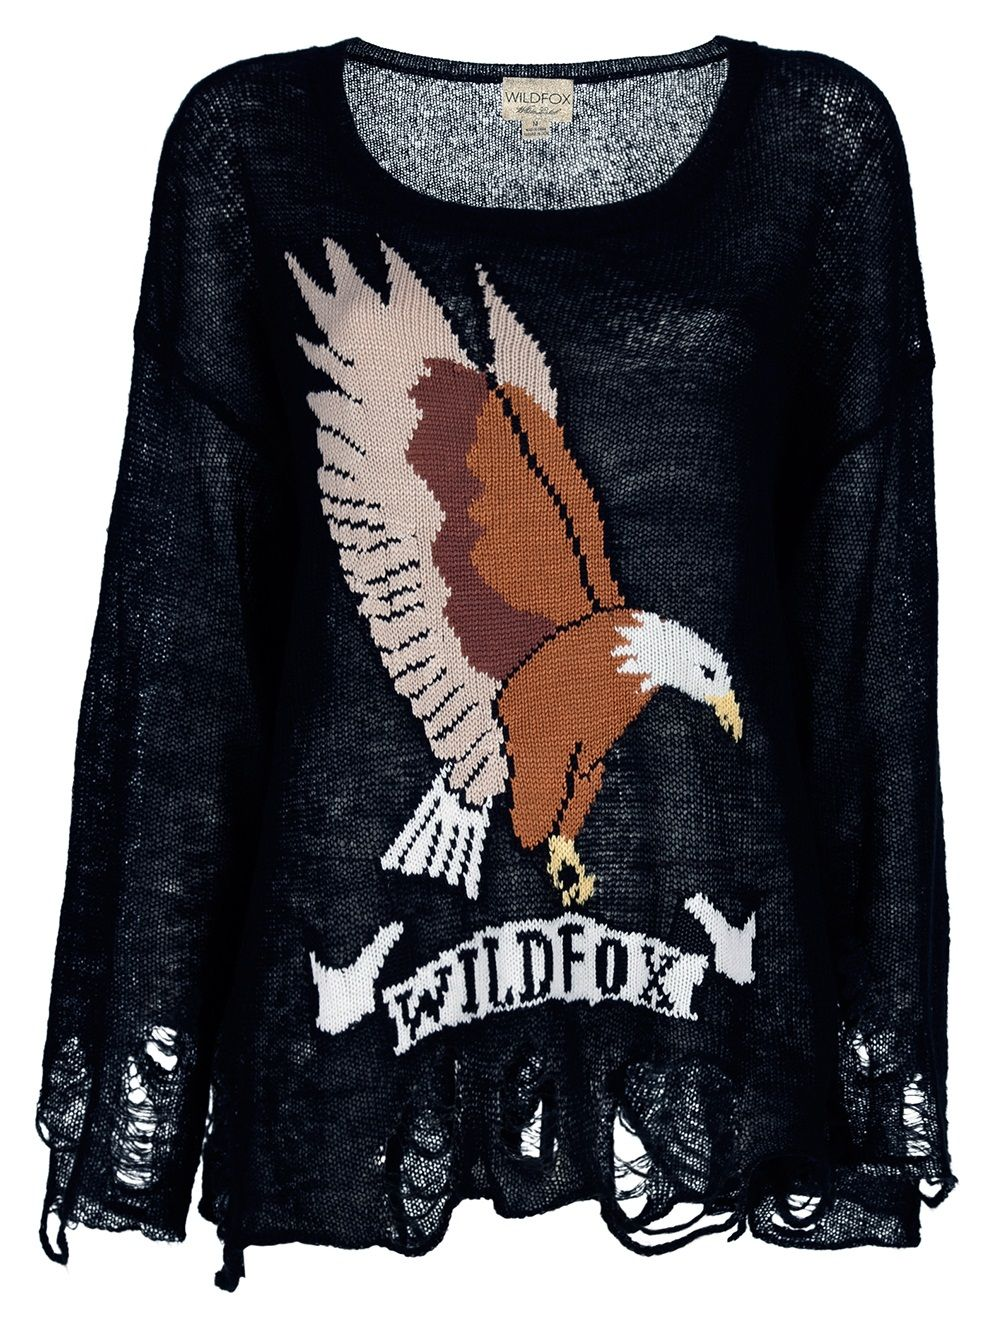 Black distressed knit sweater from Wild Fox featuring a deep round neck, a contrasting brown and white eagle knit design to the front, distressed detail at the hem and cuffs and a curtain effect to the rear.